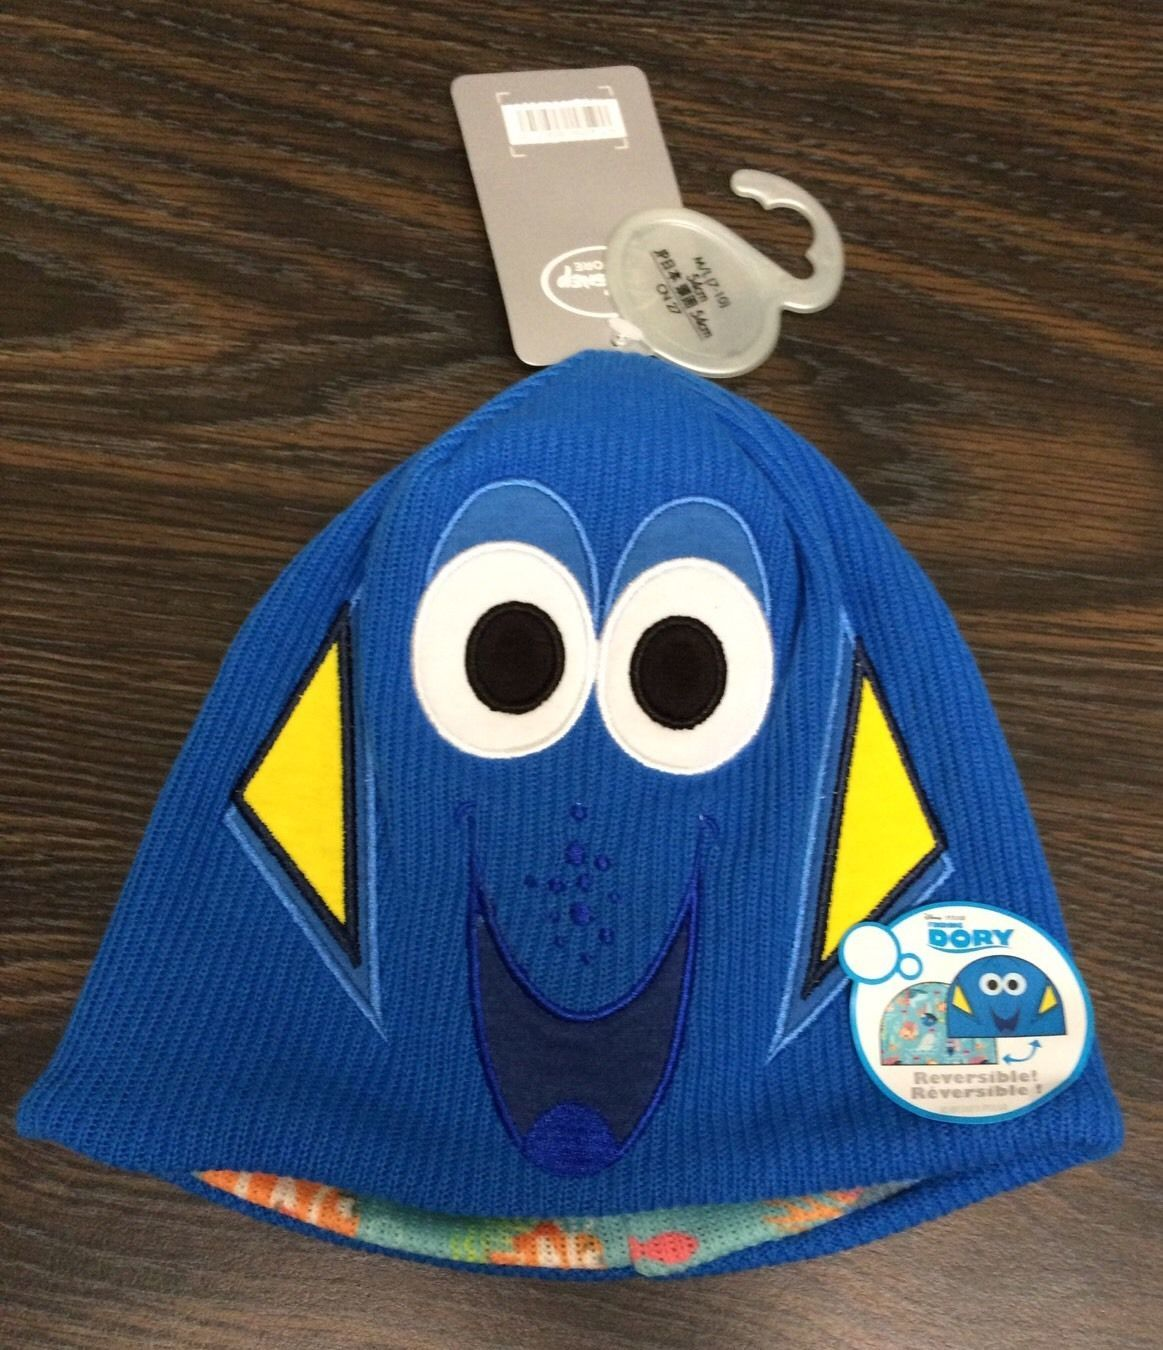 Primary image for Disney Store Finding Dory Reversible Kids Hat PIXAR Unisex sz M L 7 - 10